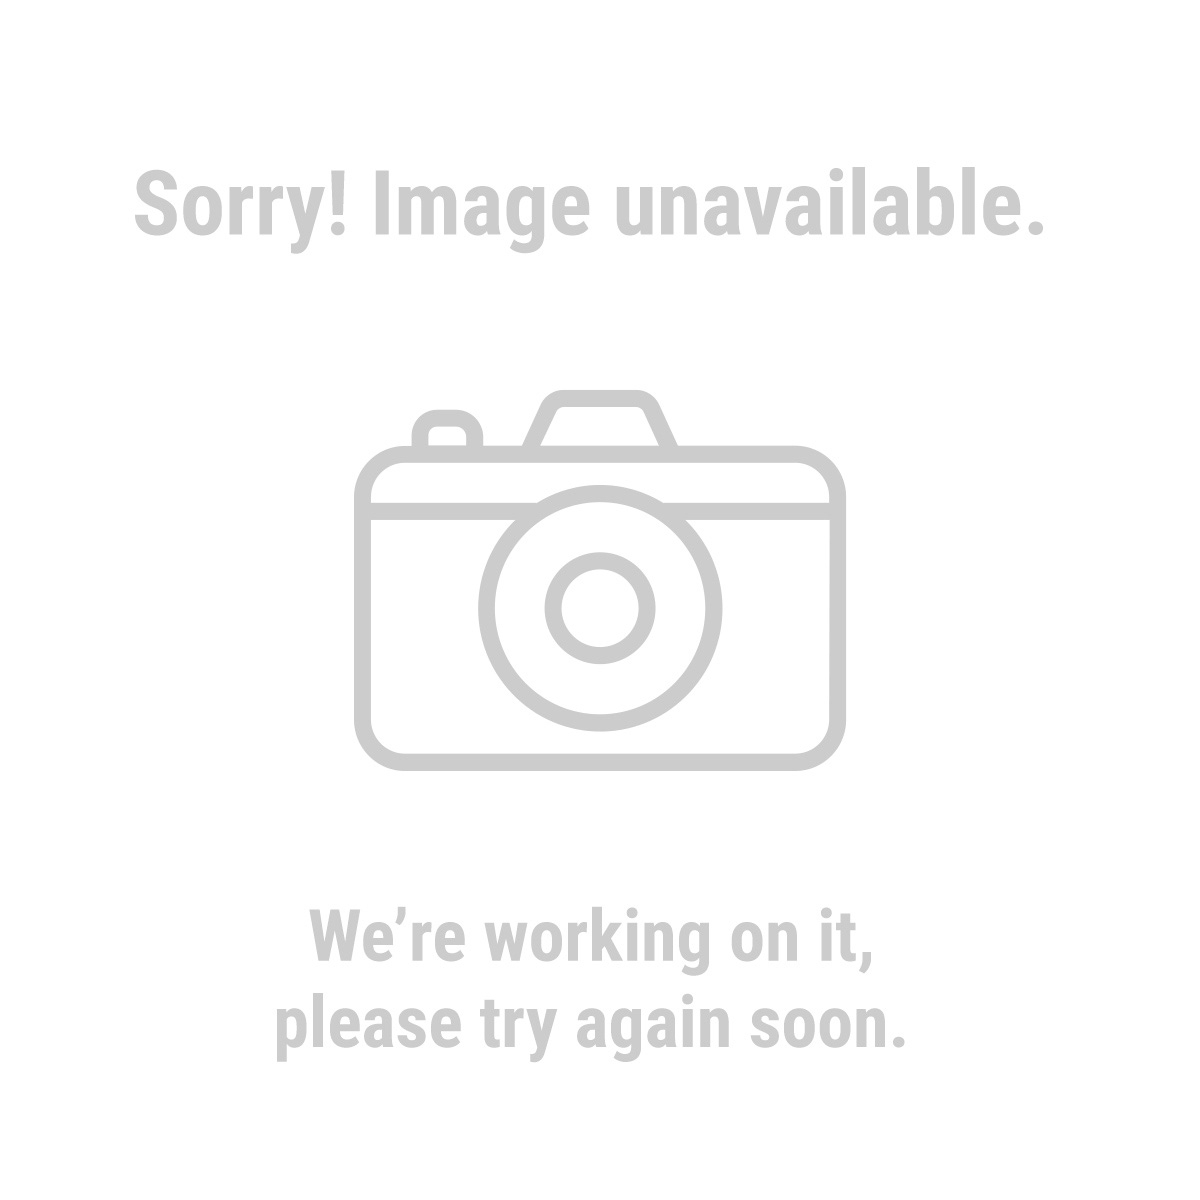 HFT 62384 10 ft. x 10 ft. Popup Canopy